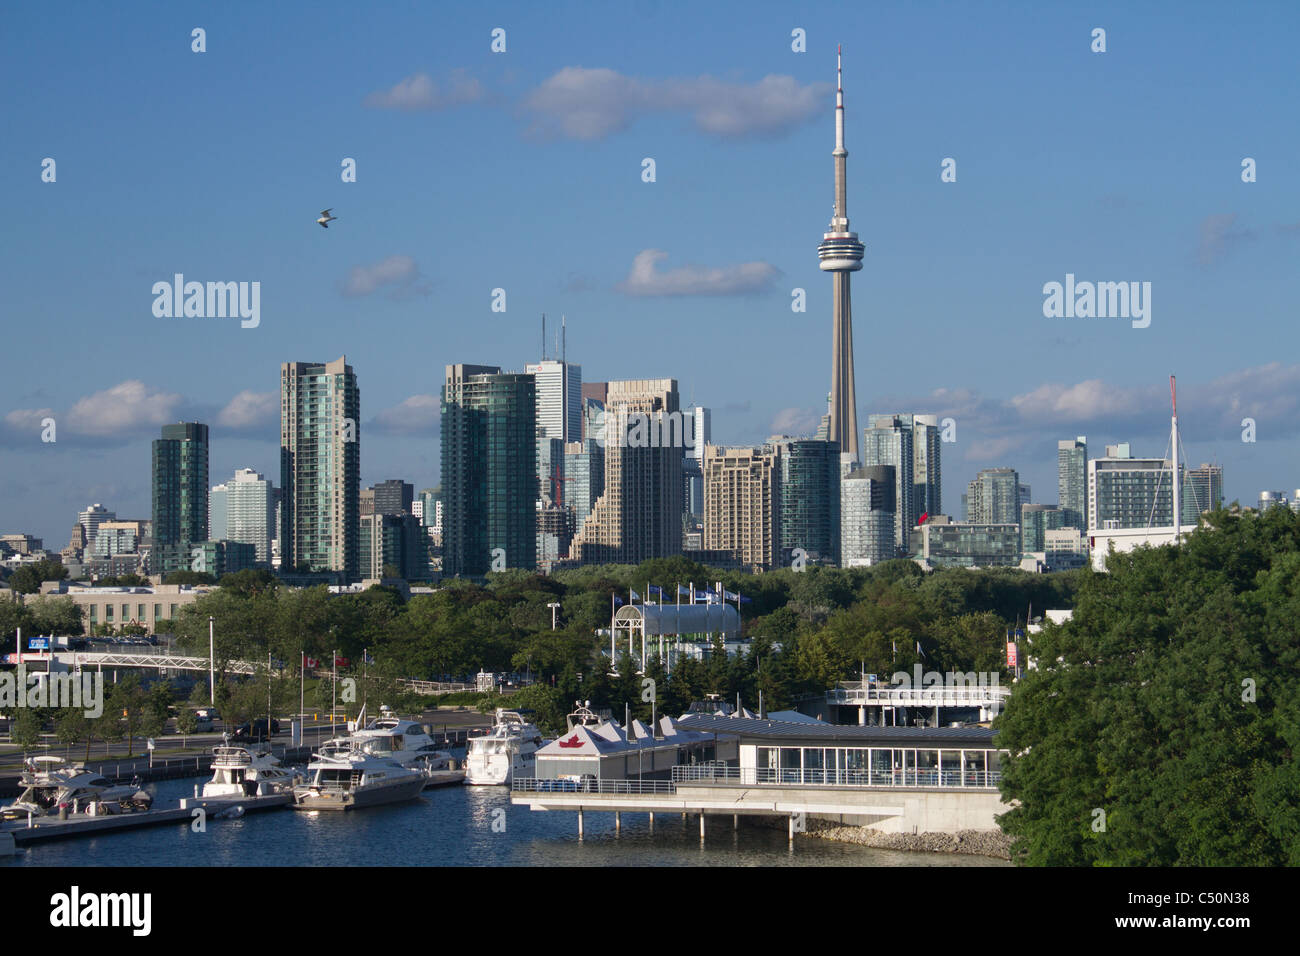 toronto sunny 'cn tower' 'harbour front' - Stock Image